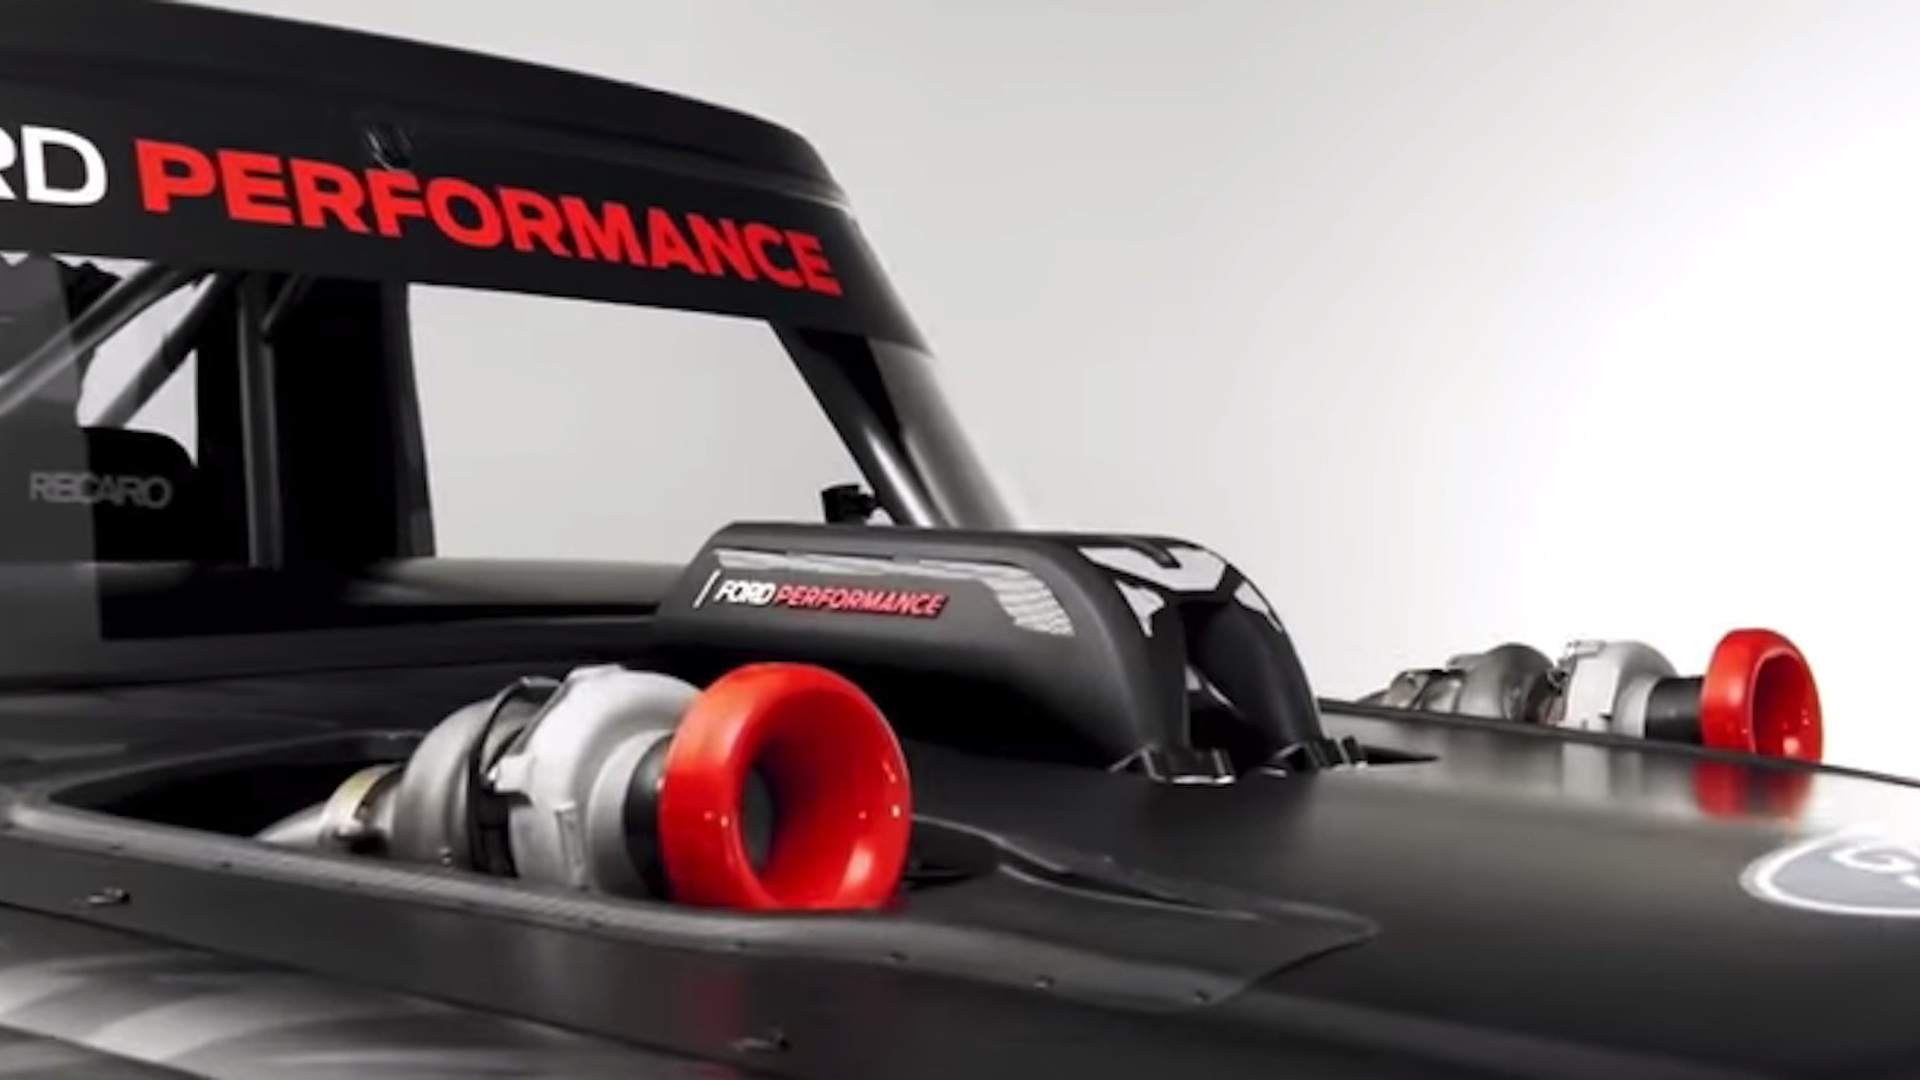 Ford Performance 3D-printed intake manifold for Ken Block's 1977 Hoonitruck F-150